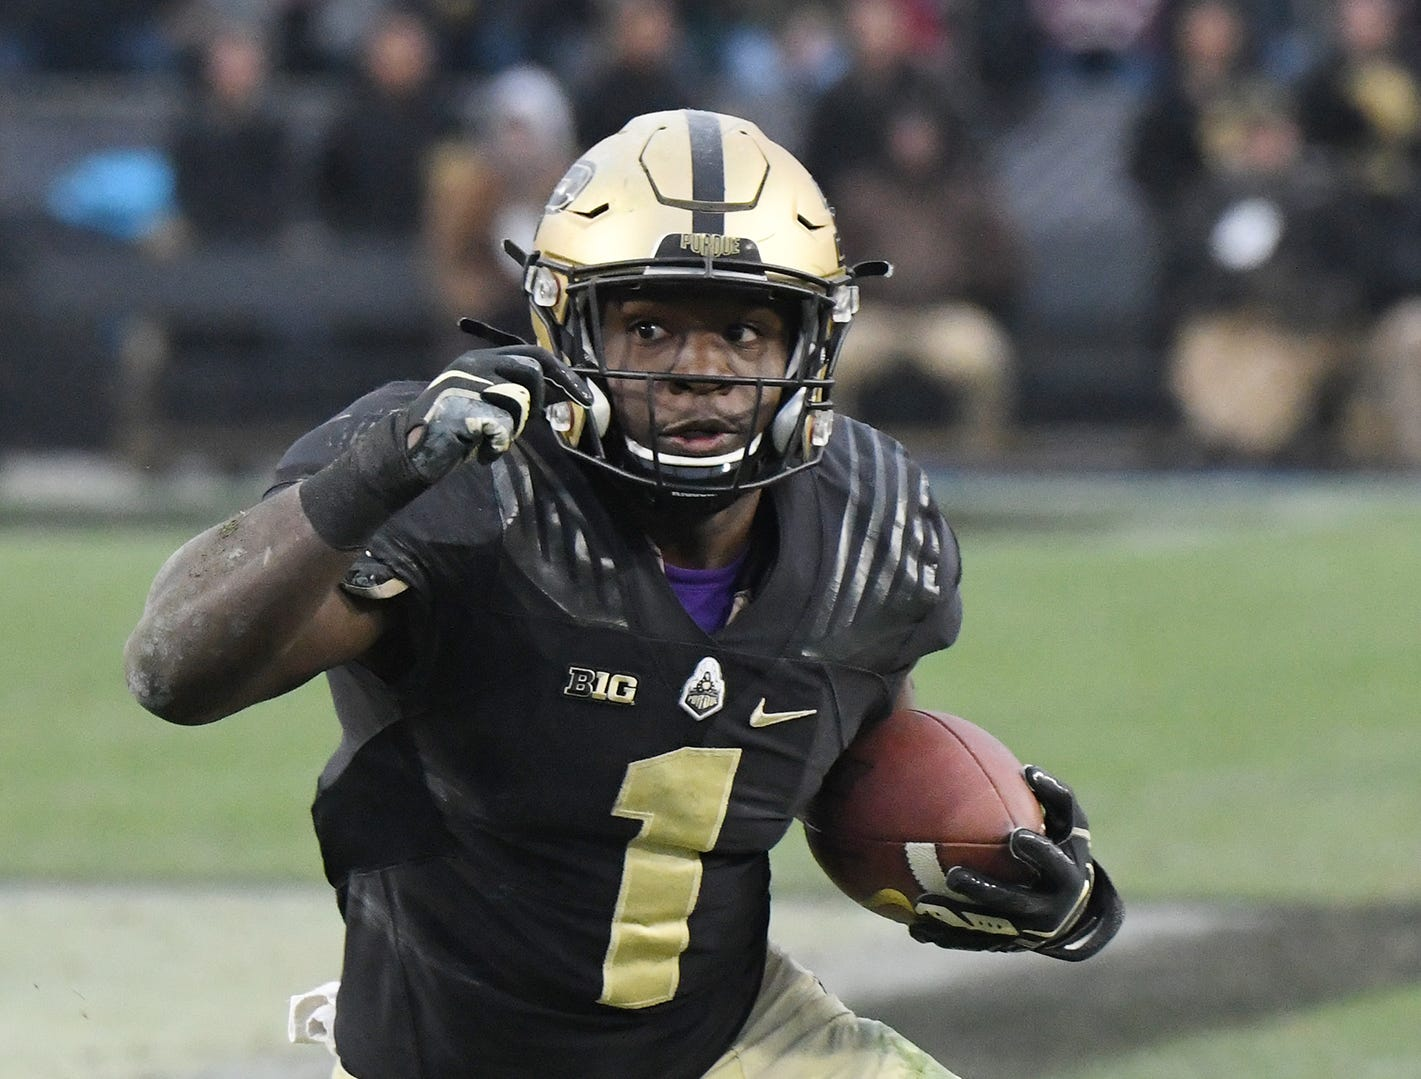 D. J. Knox of Purdue on a touchdown reception in the first half against Wisconsin Saturday, November 17, 2018, at Ross-Ade Stadium.